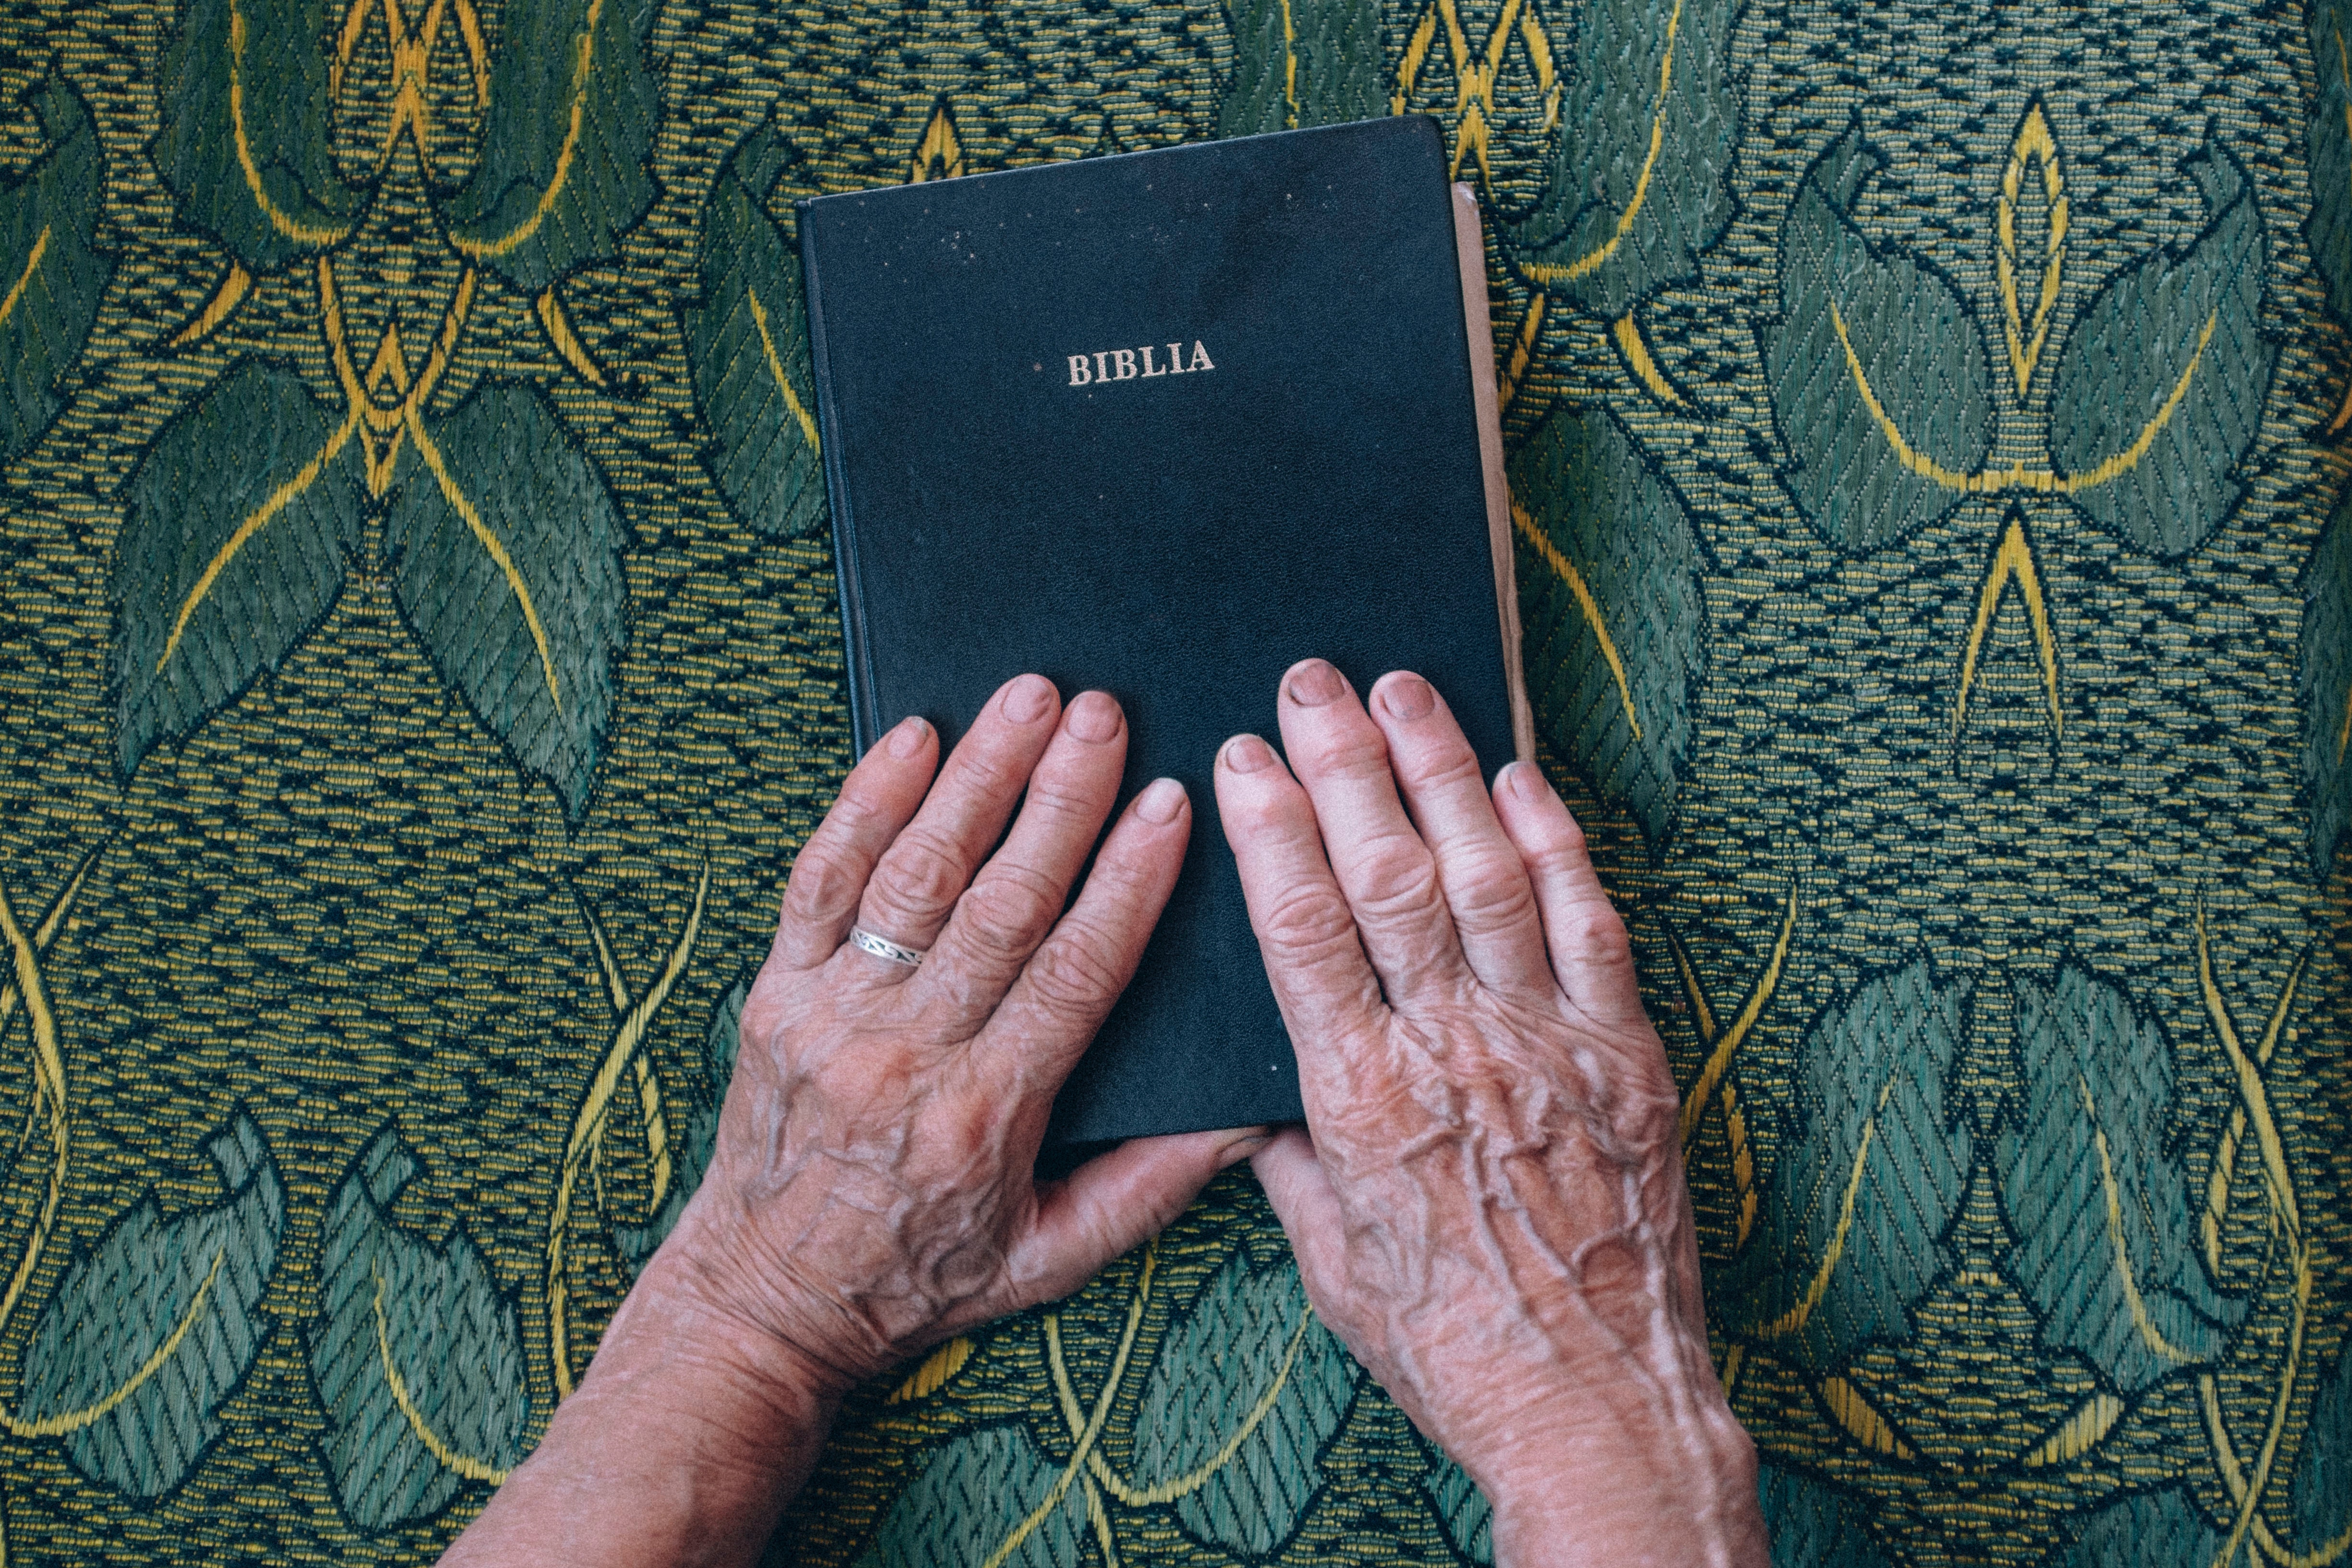 Wrinkled Hand holding the Bible - Photo by Raul Petri on Unsplash